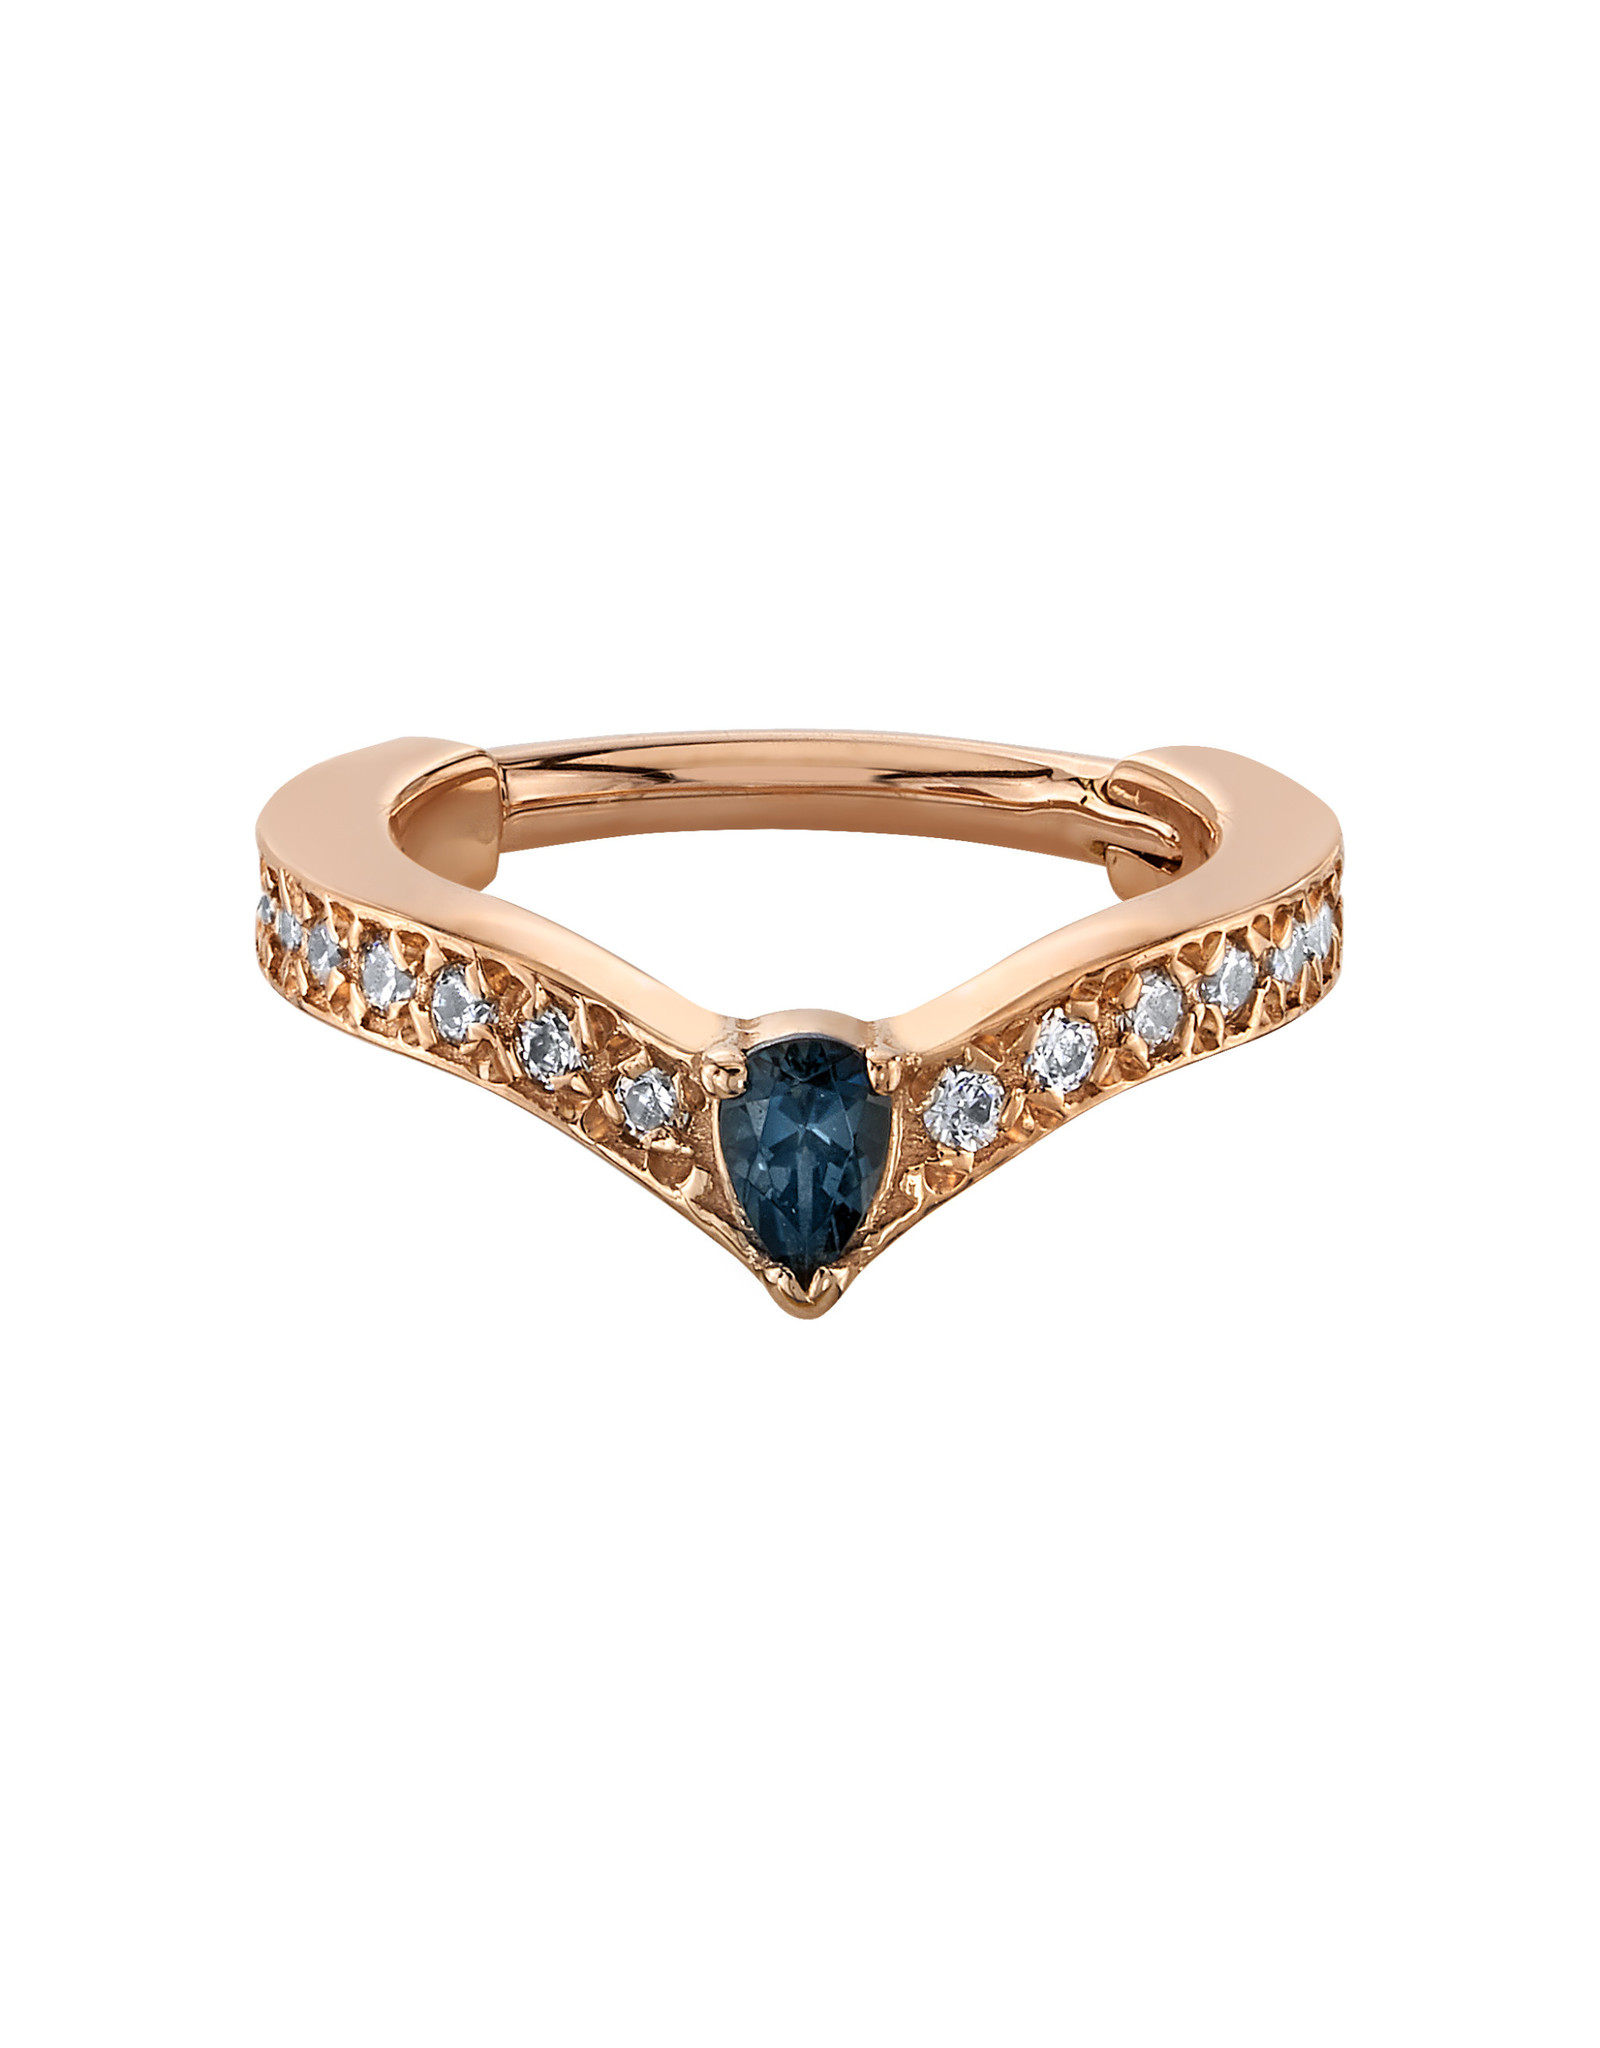 "BVLA BVLA 16g 3/8 rose gold  ""Cherish Pear"" clicker with 3x2 AA London Blue Topaz pear and 18x 1.0 CZ"